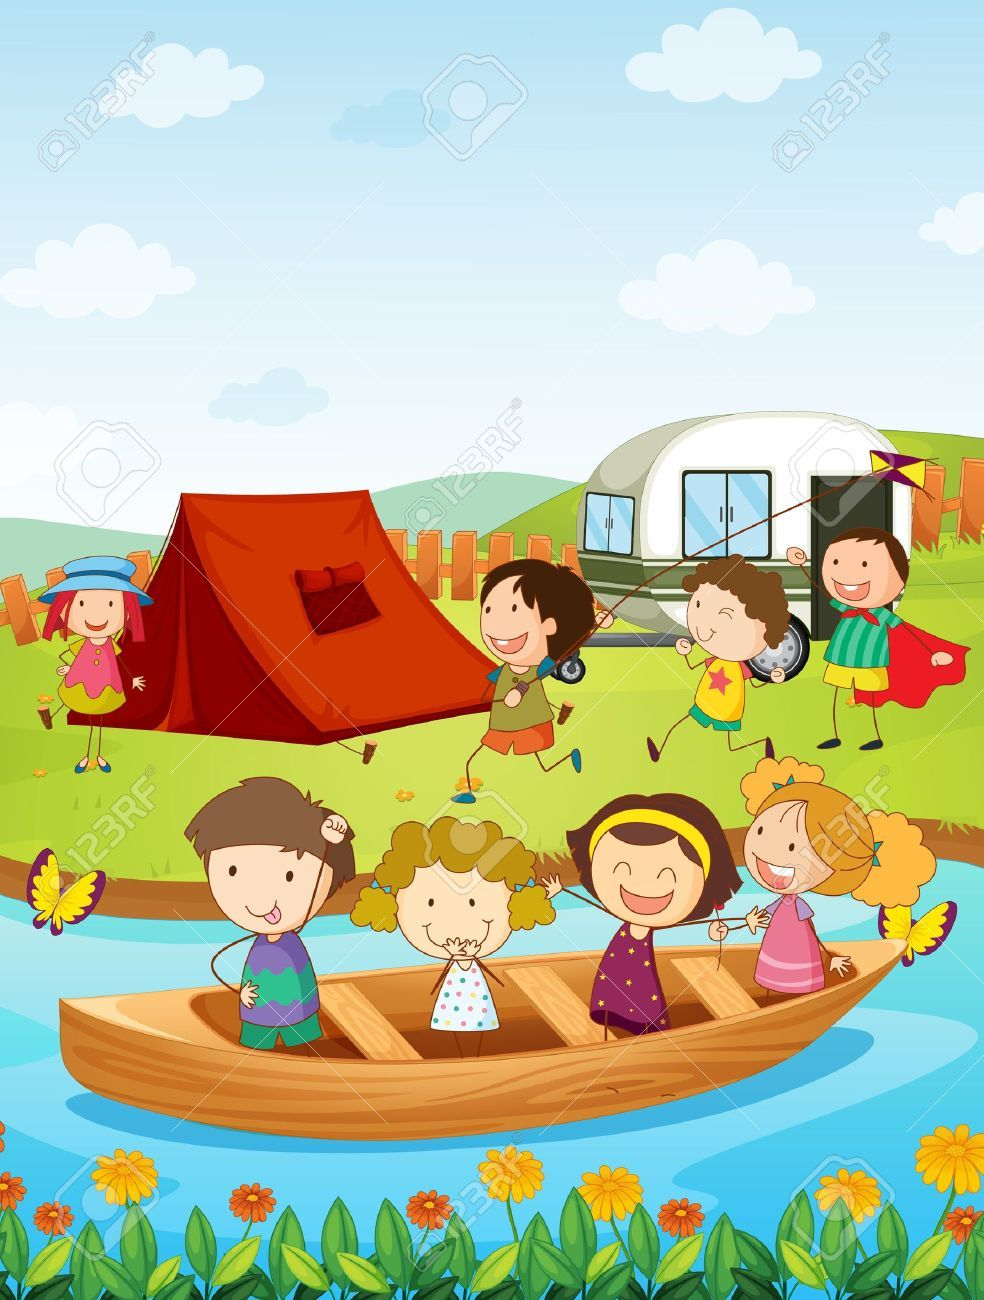 Camping books clipart jpg royalty free Pin by ahmad mustaqim on kids illution | Camping books, Tent camping ... jpg royalty free